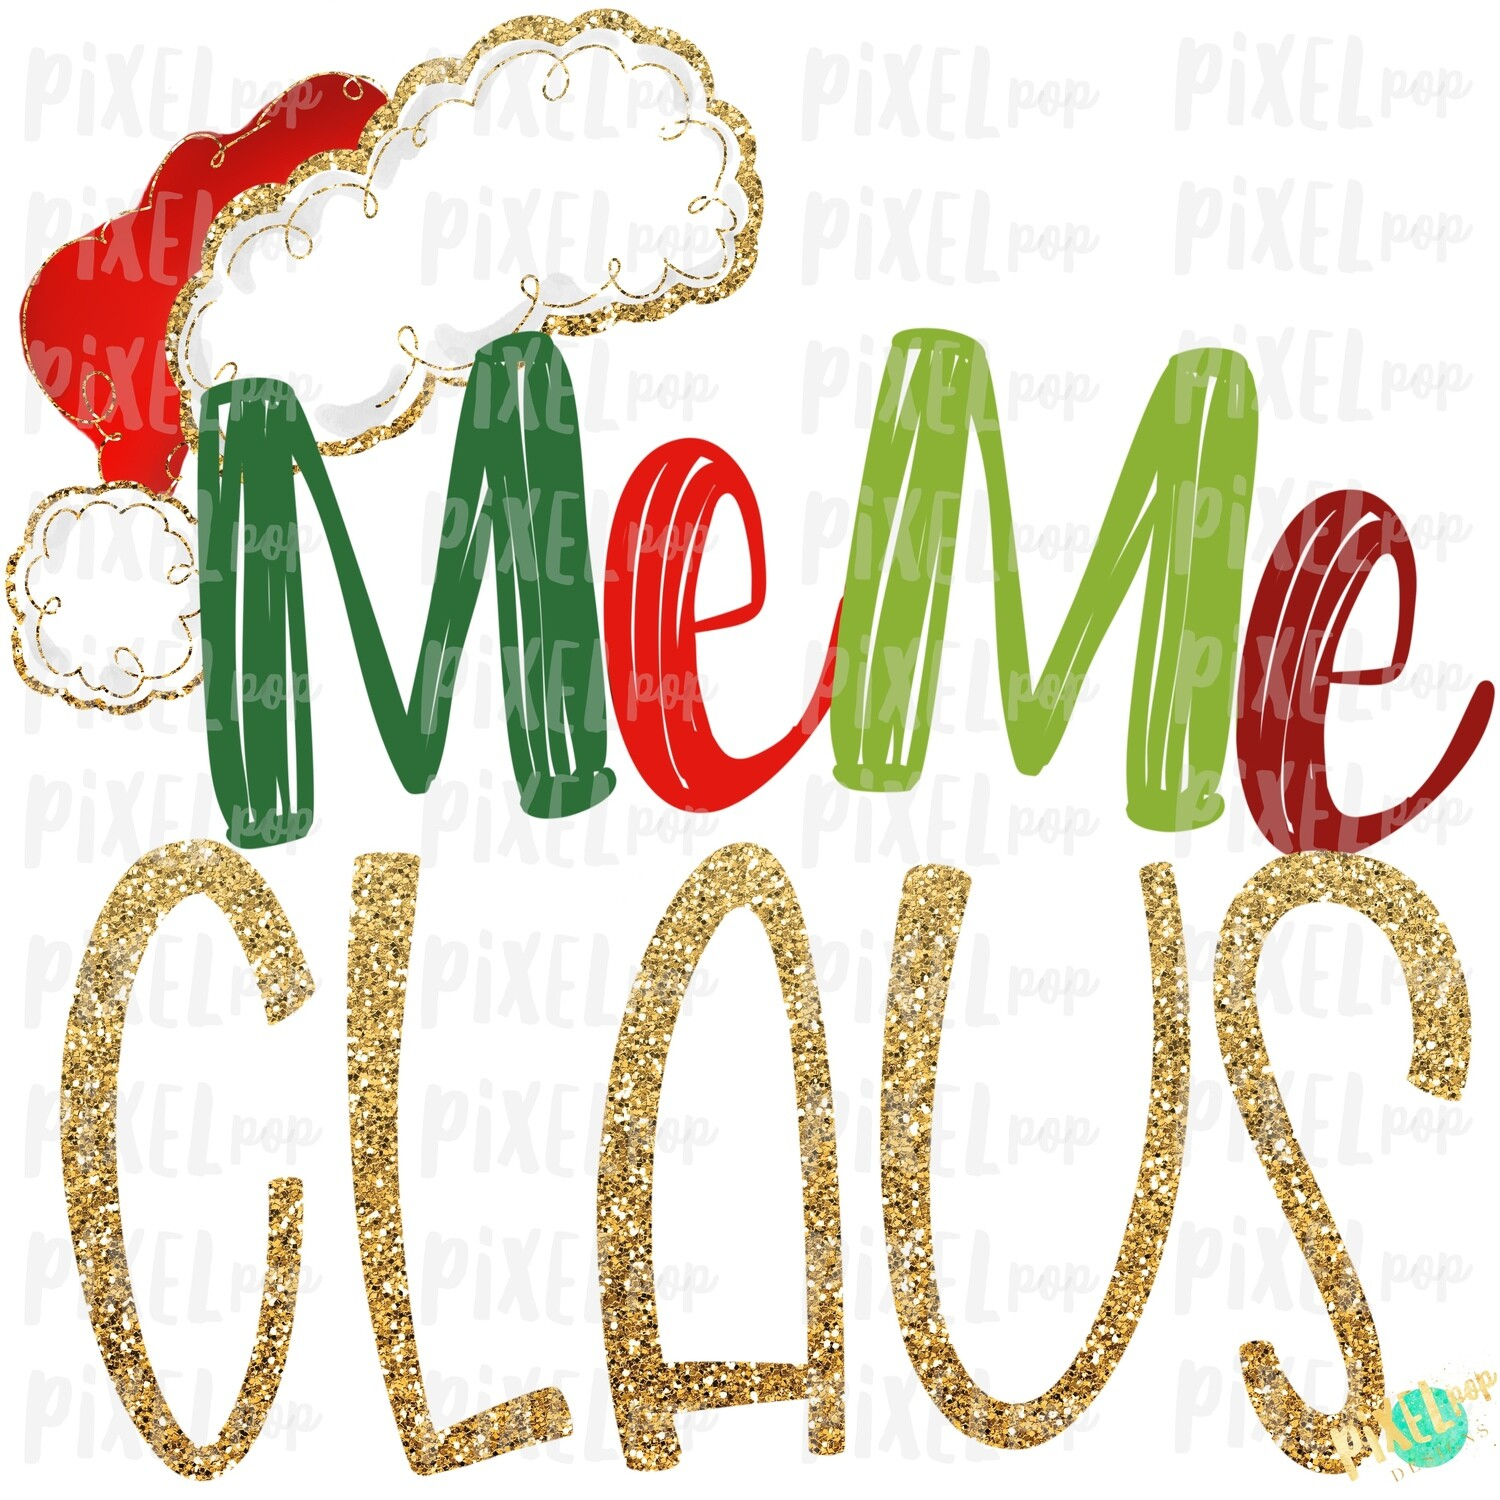 Meme Claus Santa Hat Digital Watercolor Sublimation PNG Art | Drawn Design | Sublimation PNG | Digital Download | Printable Artwork | Art